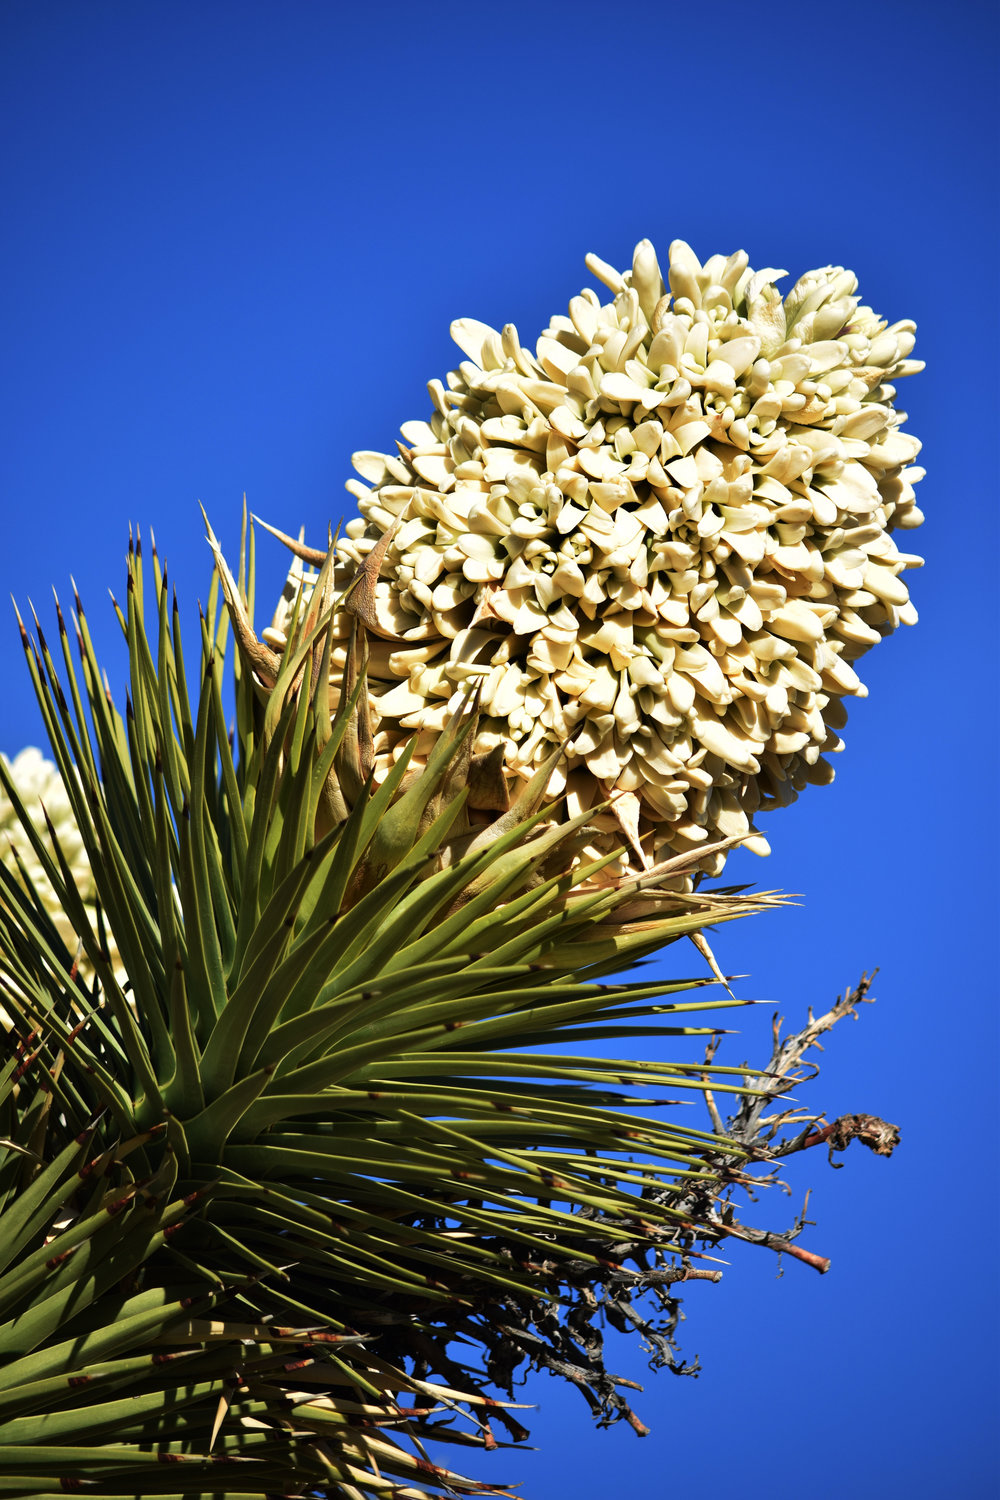 Joshua Tree Blossom - Photo by Tim Giller